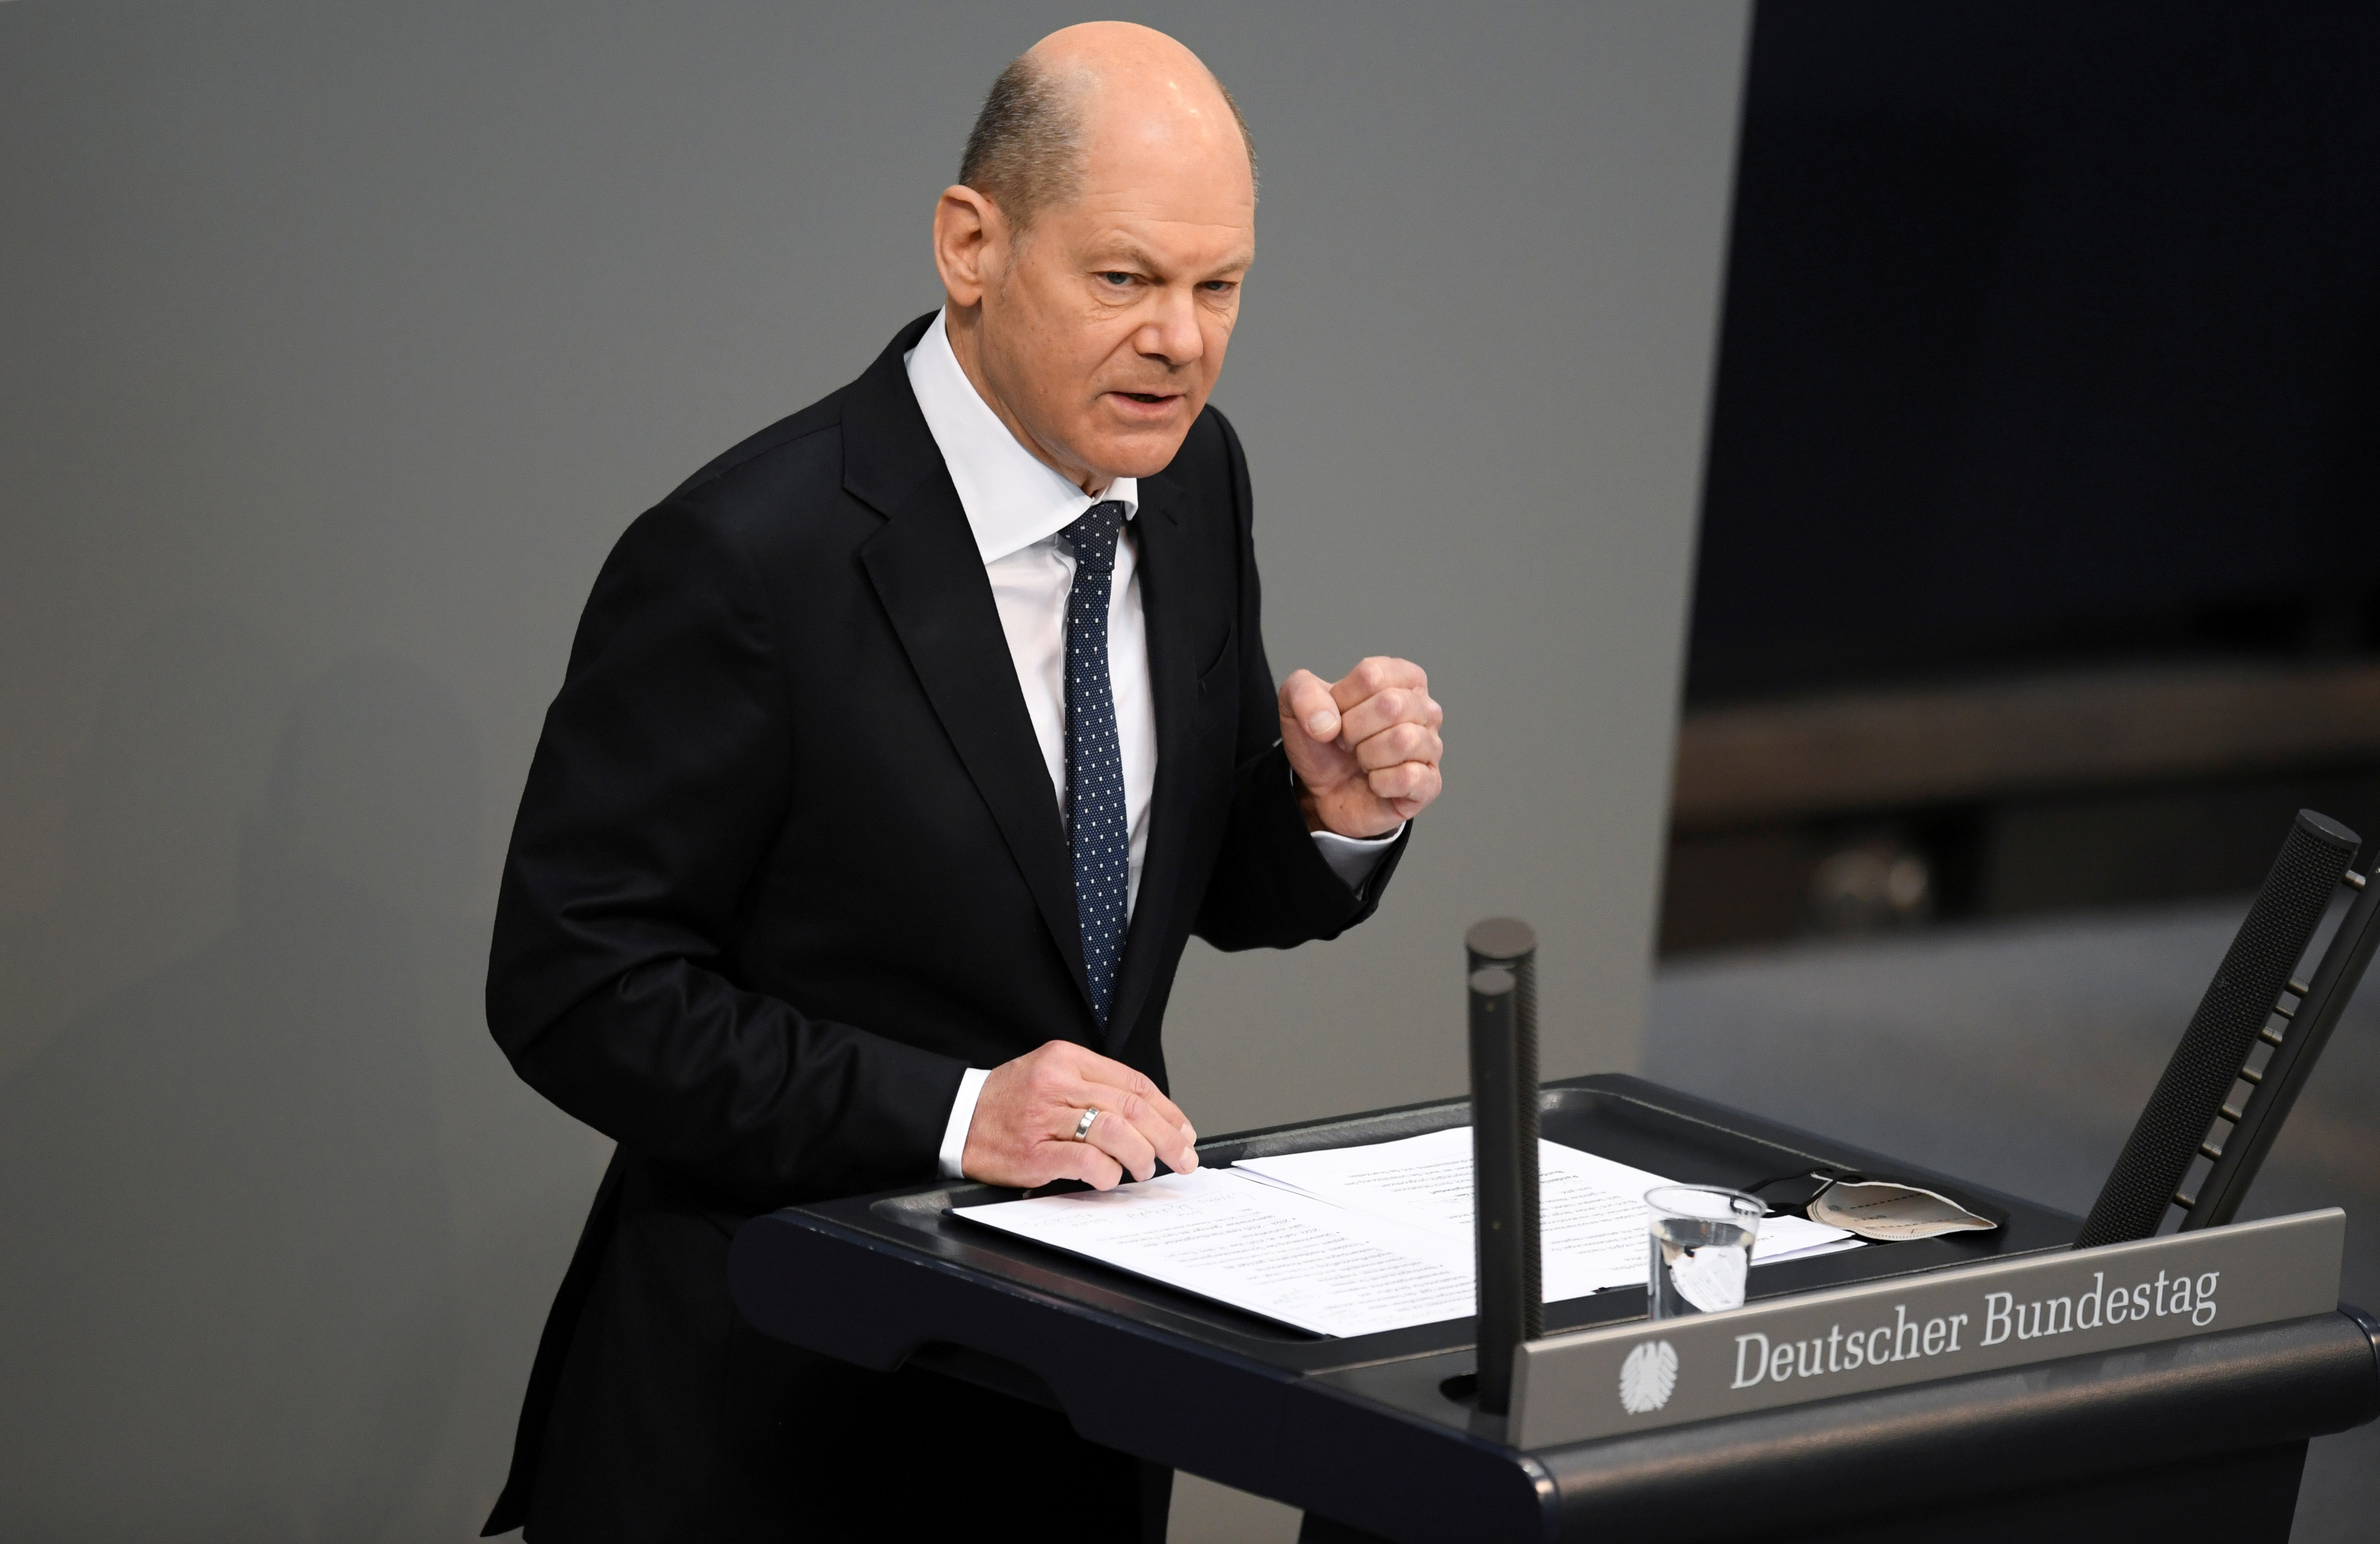 German Finance Minister Olaf Scholz speaks during a session of the lower house of parliament Bundestag in Berlin, Germany, April 15, 2021. REUTERS/Annegret Hilse